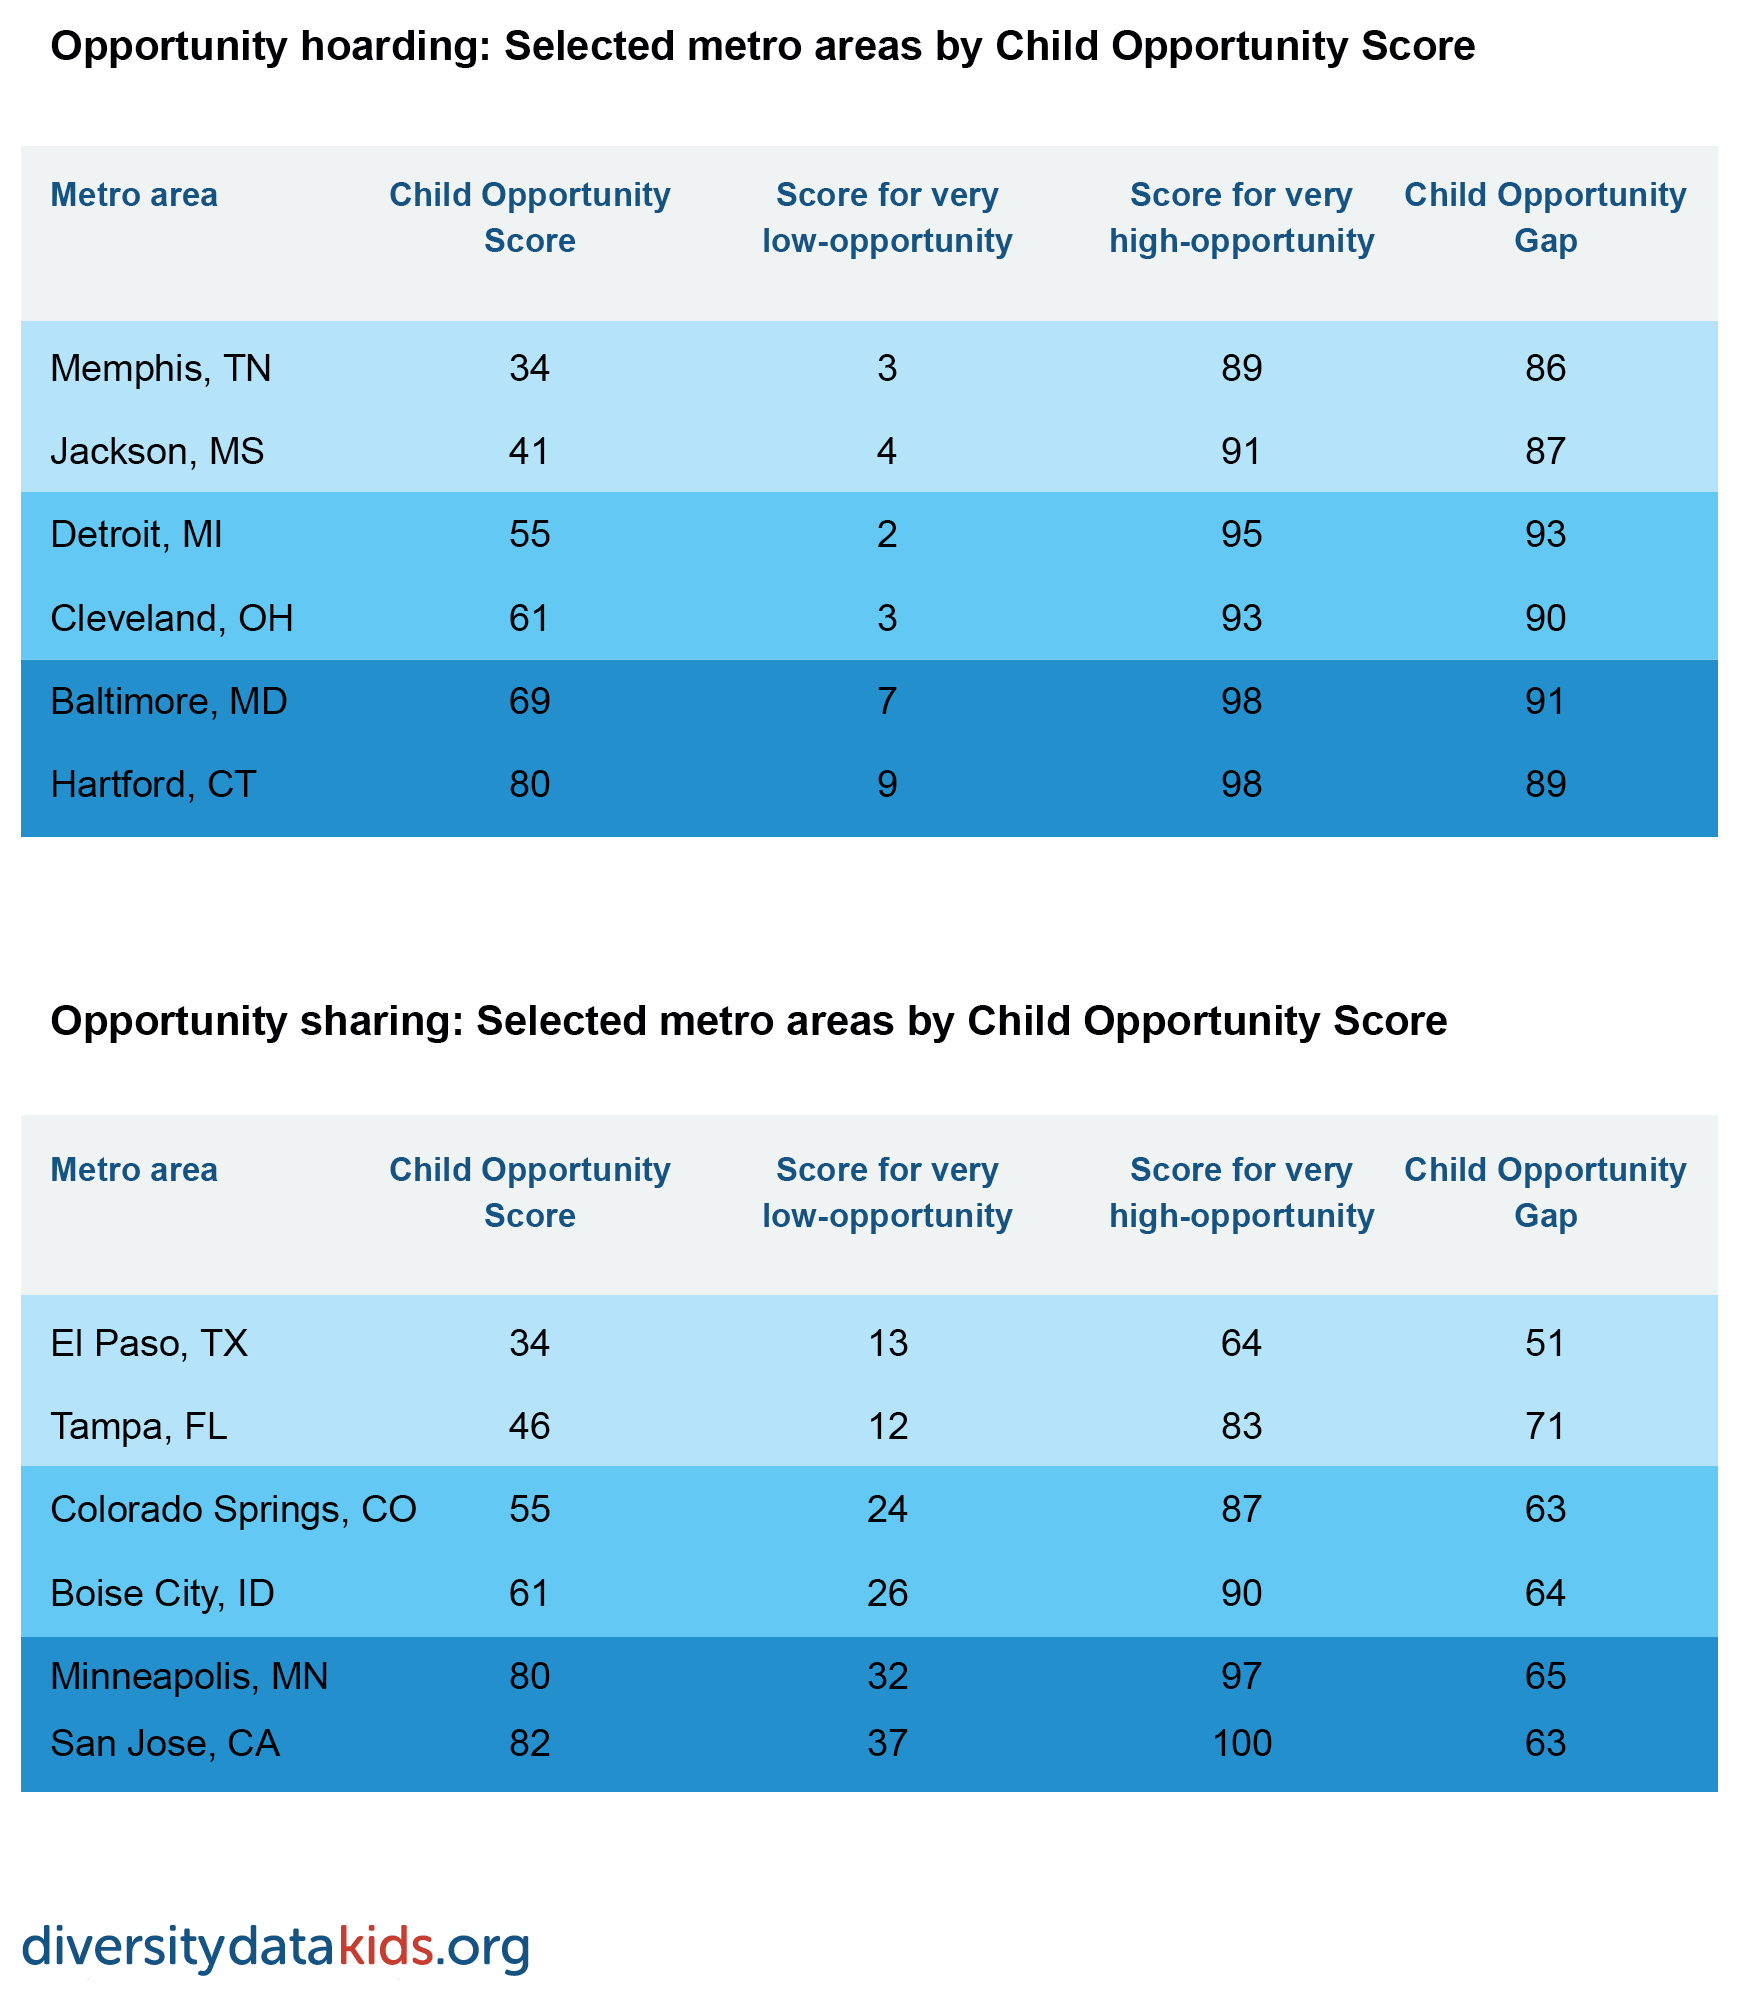 Table showing opportunity hoarding and sharing metros